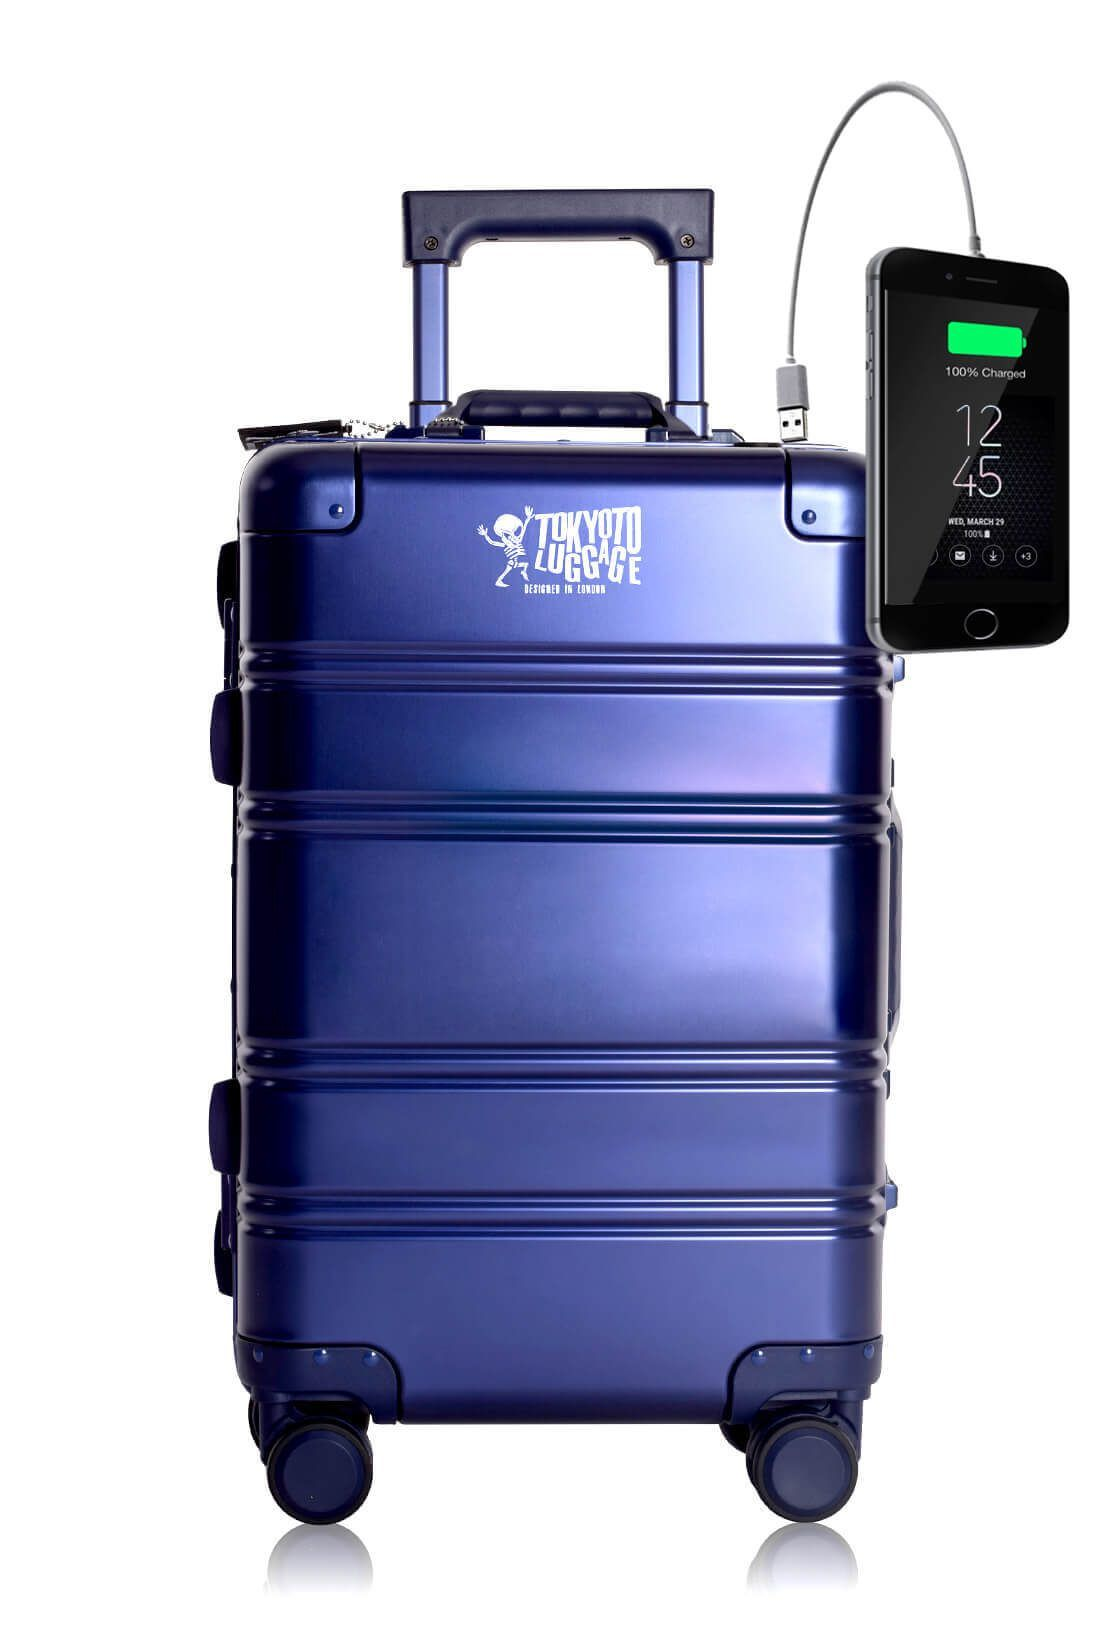 Aluminum Metal Hand Trolley Cabin Luggage Suitcase Online Powerbank USB Charger TOKYOTO BLUE SMALL LOGO